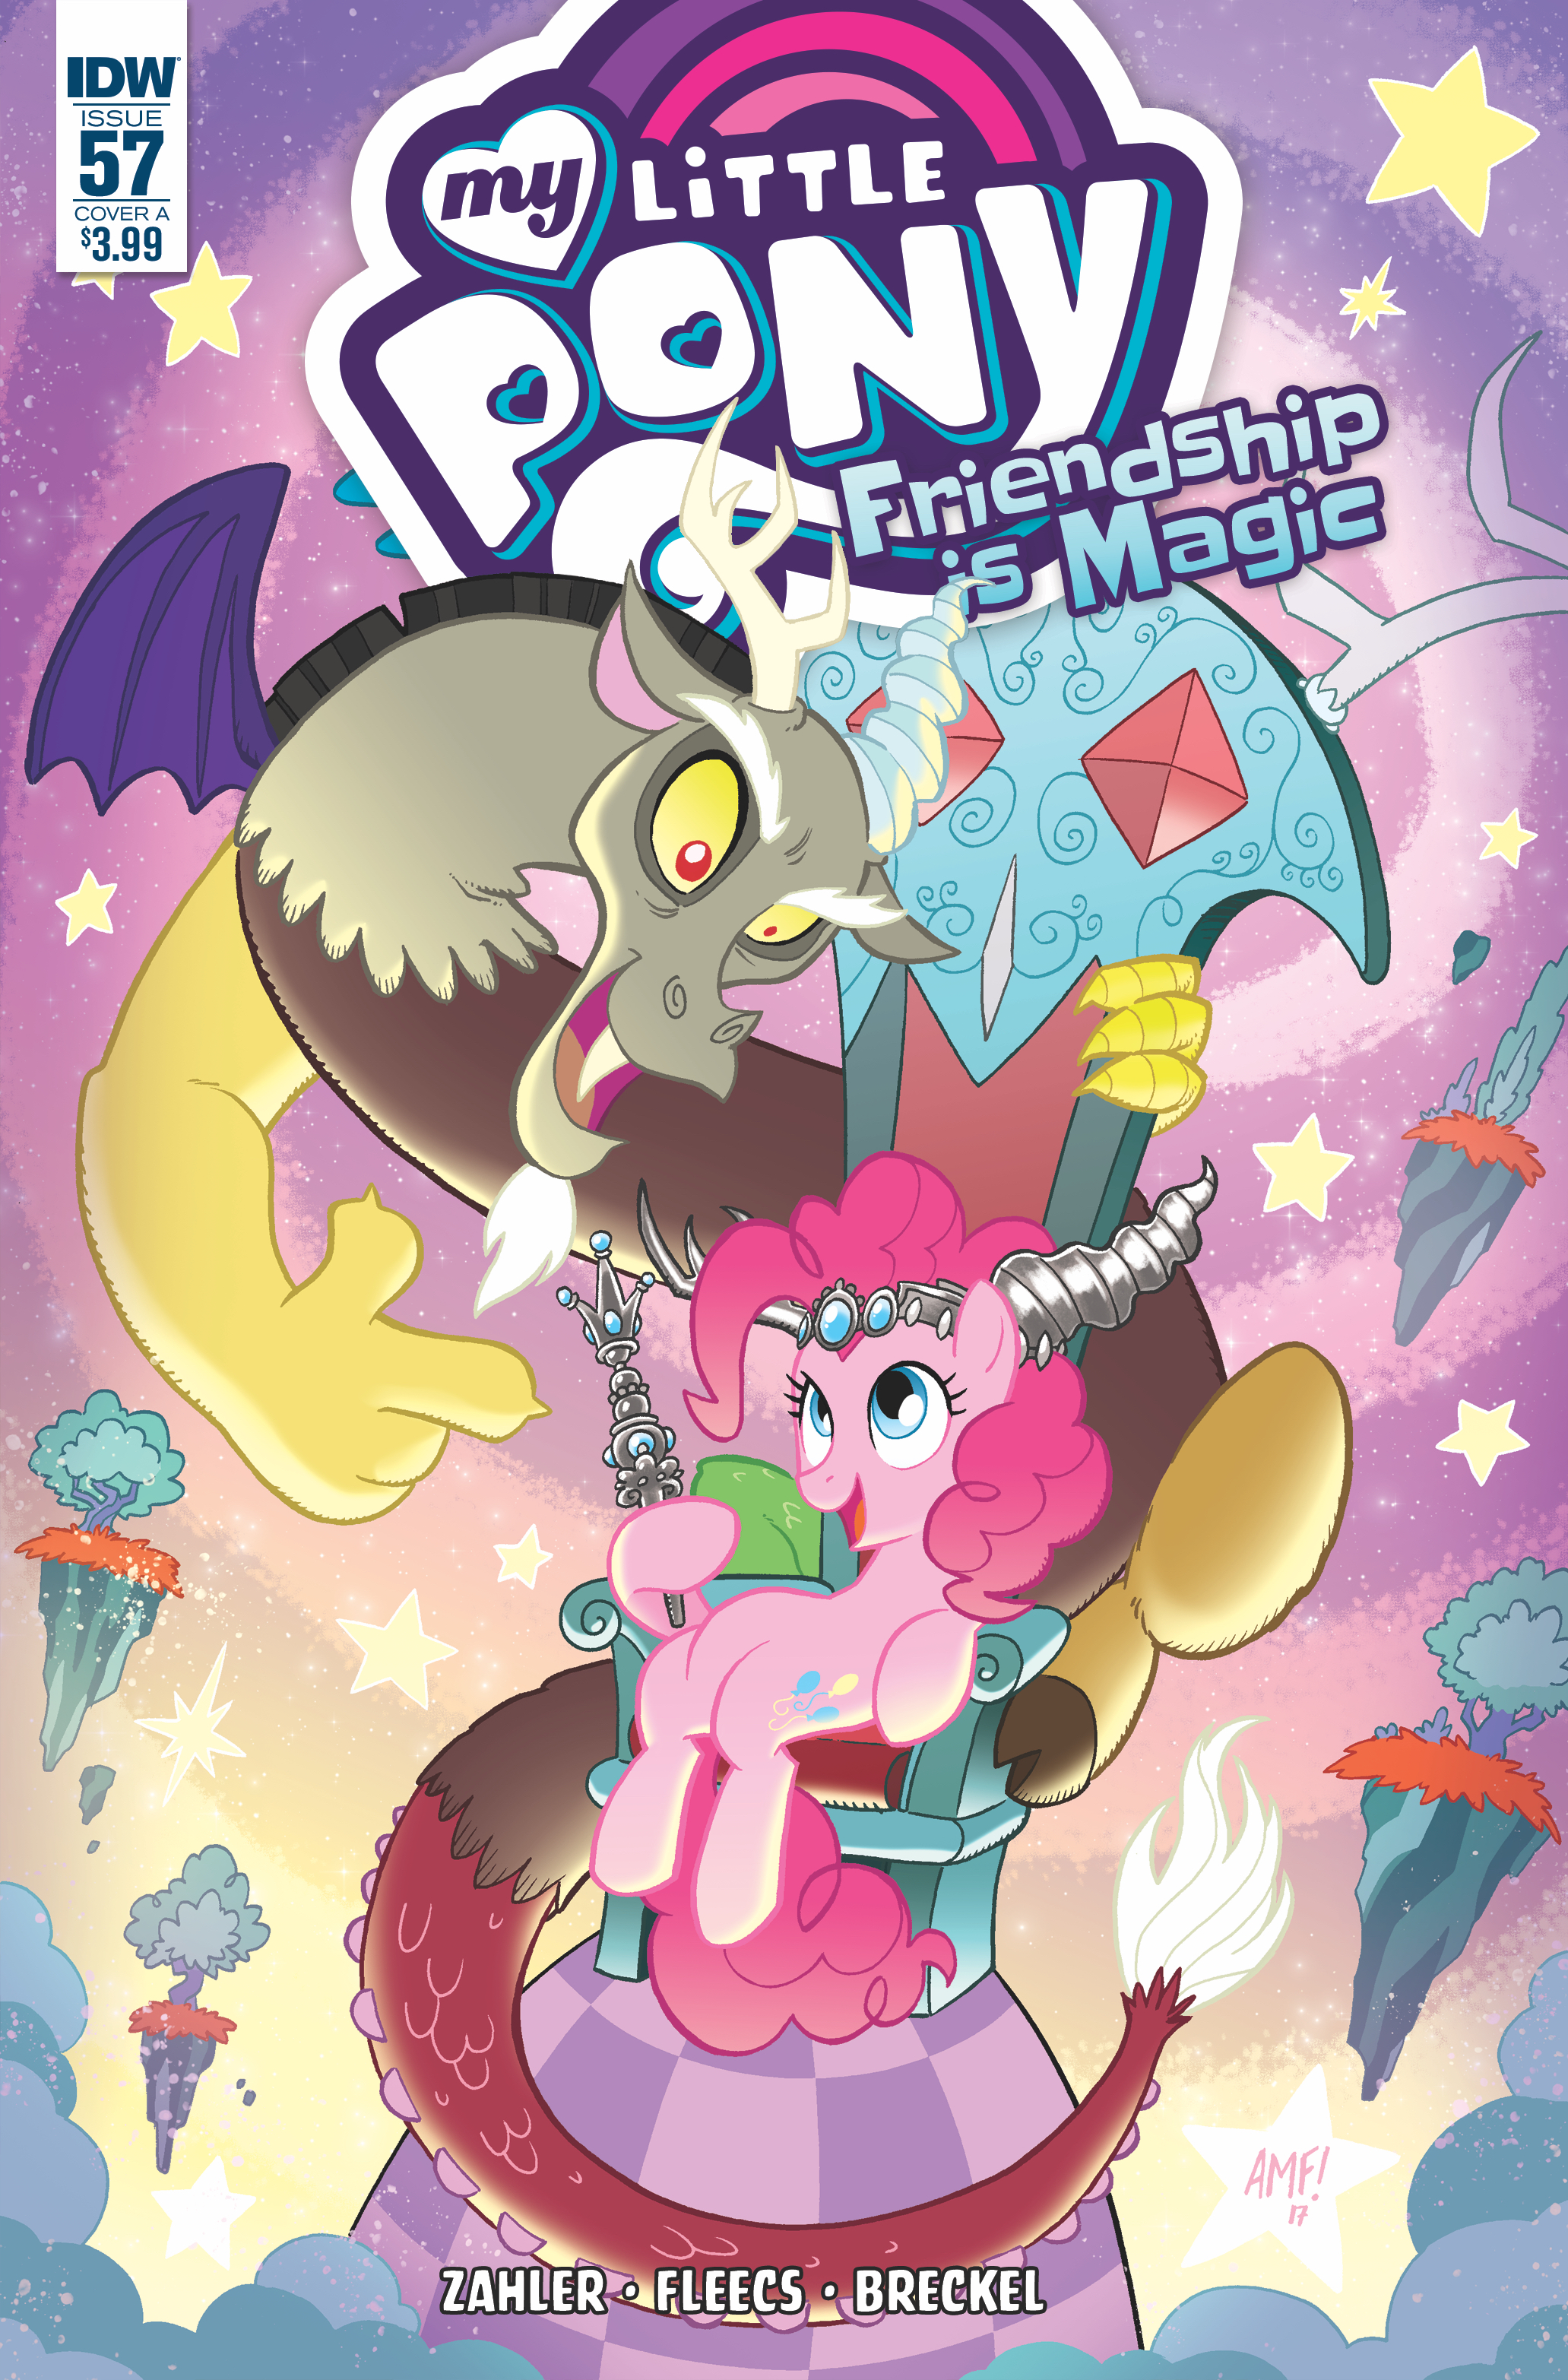 Friendship is Magic Issue 57